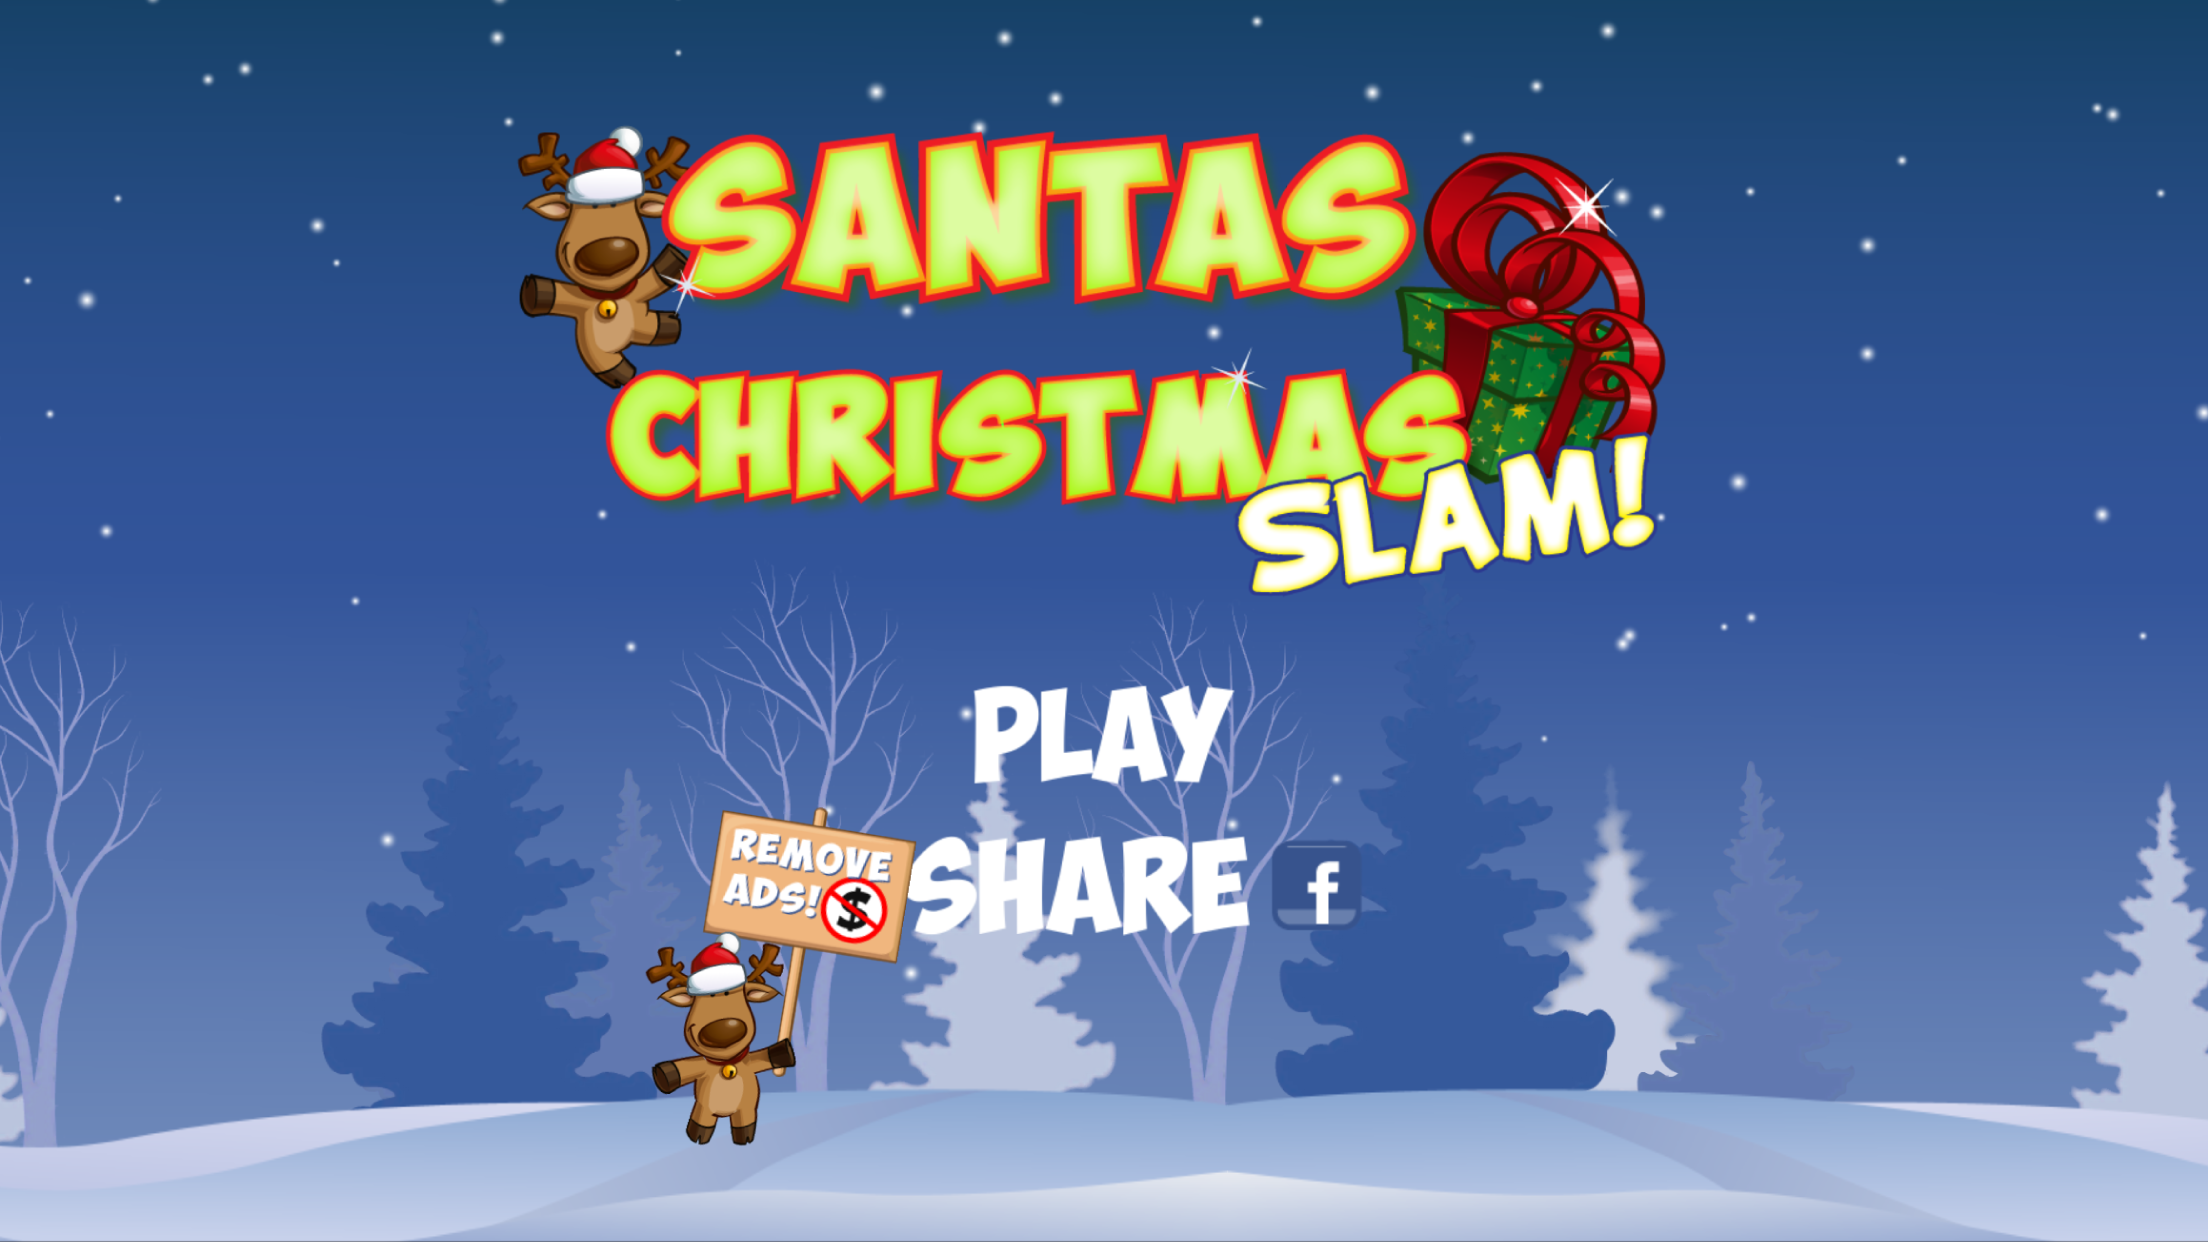 Santas Christmas Slam by Hangar-18